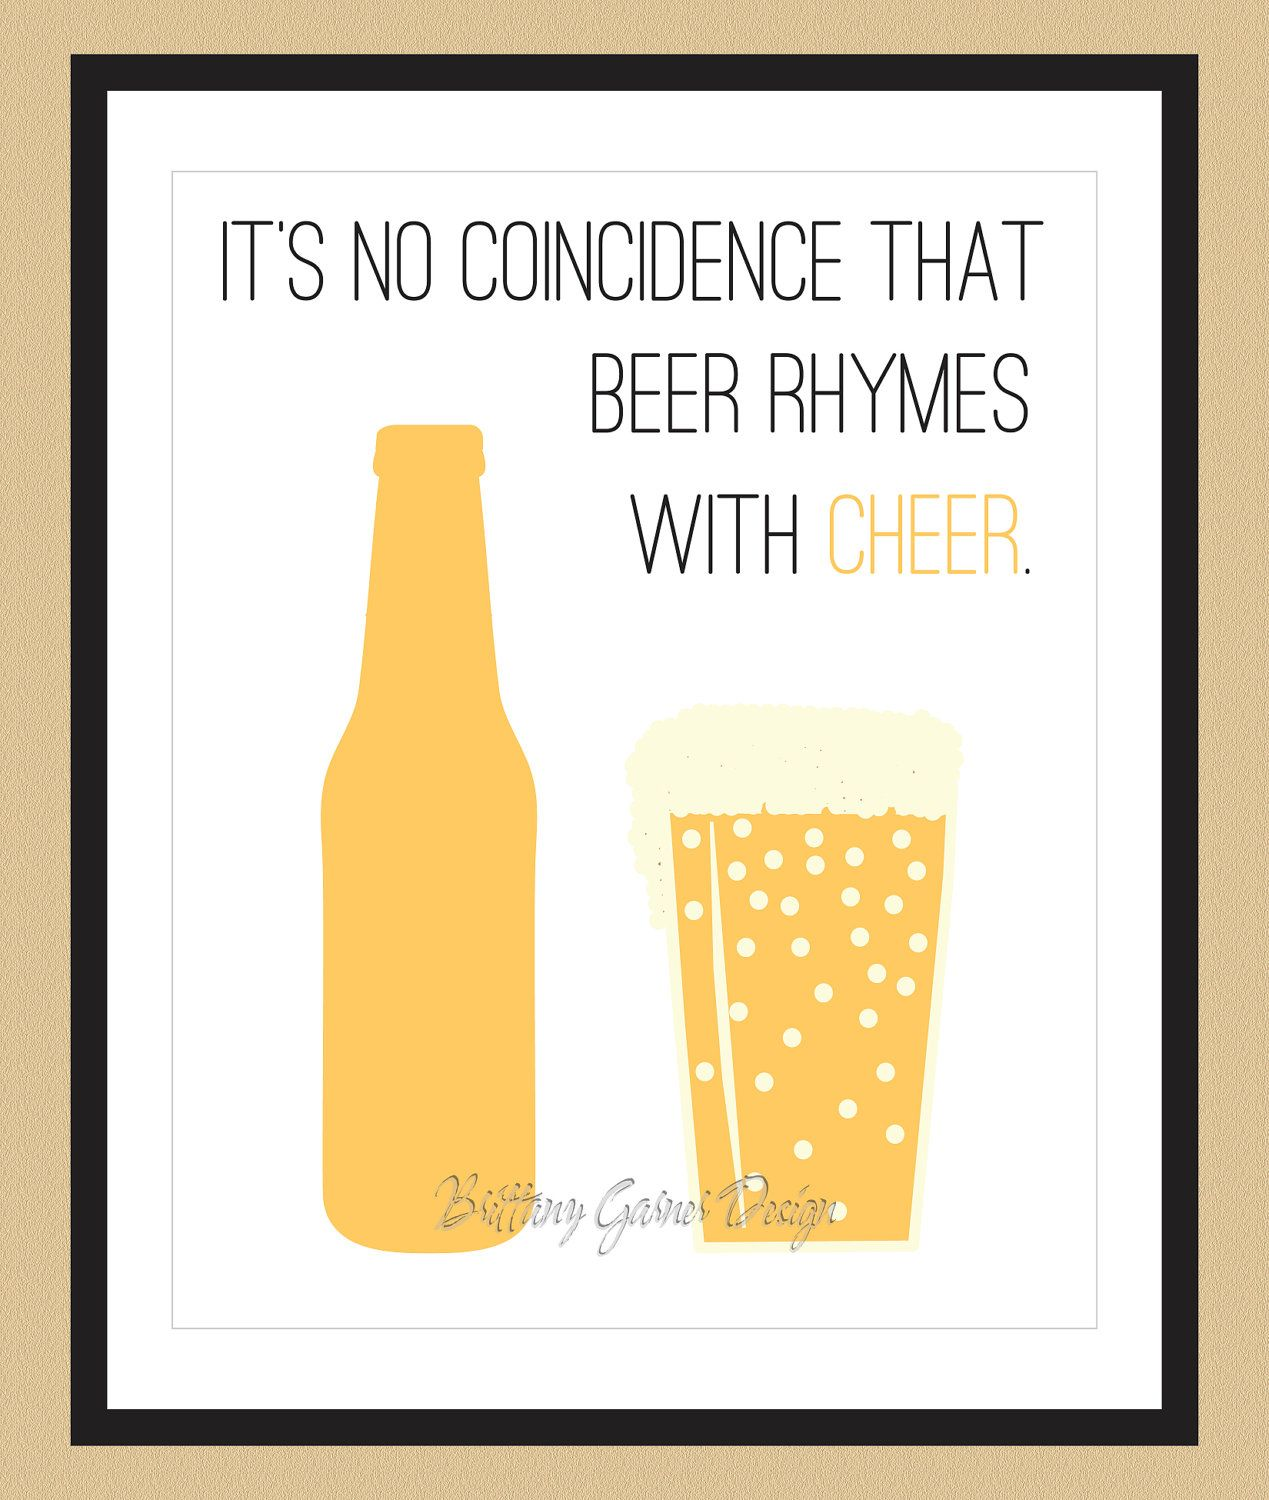 It's no coincidence that beer rhymes with cheer #Beerlovesyou